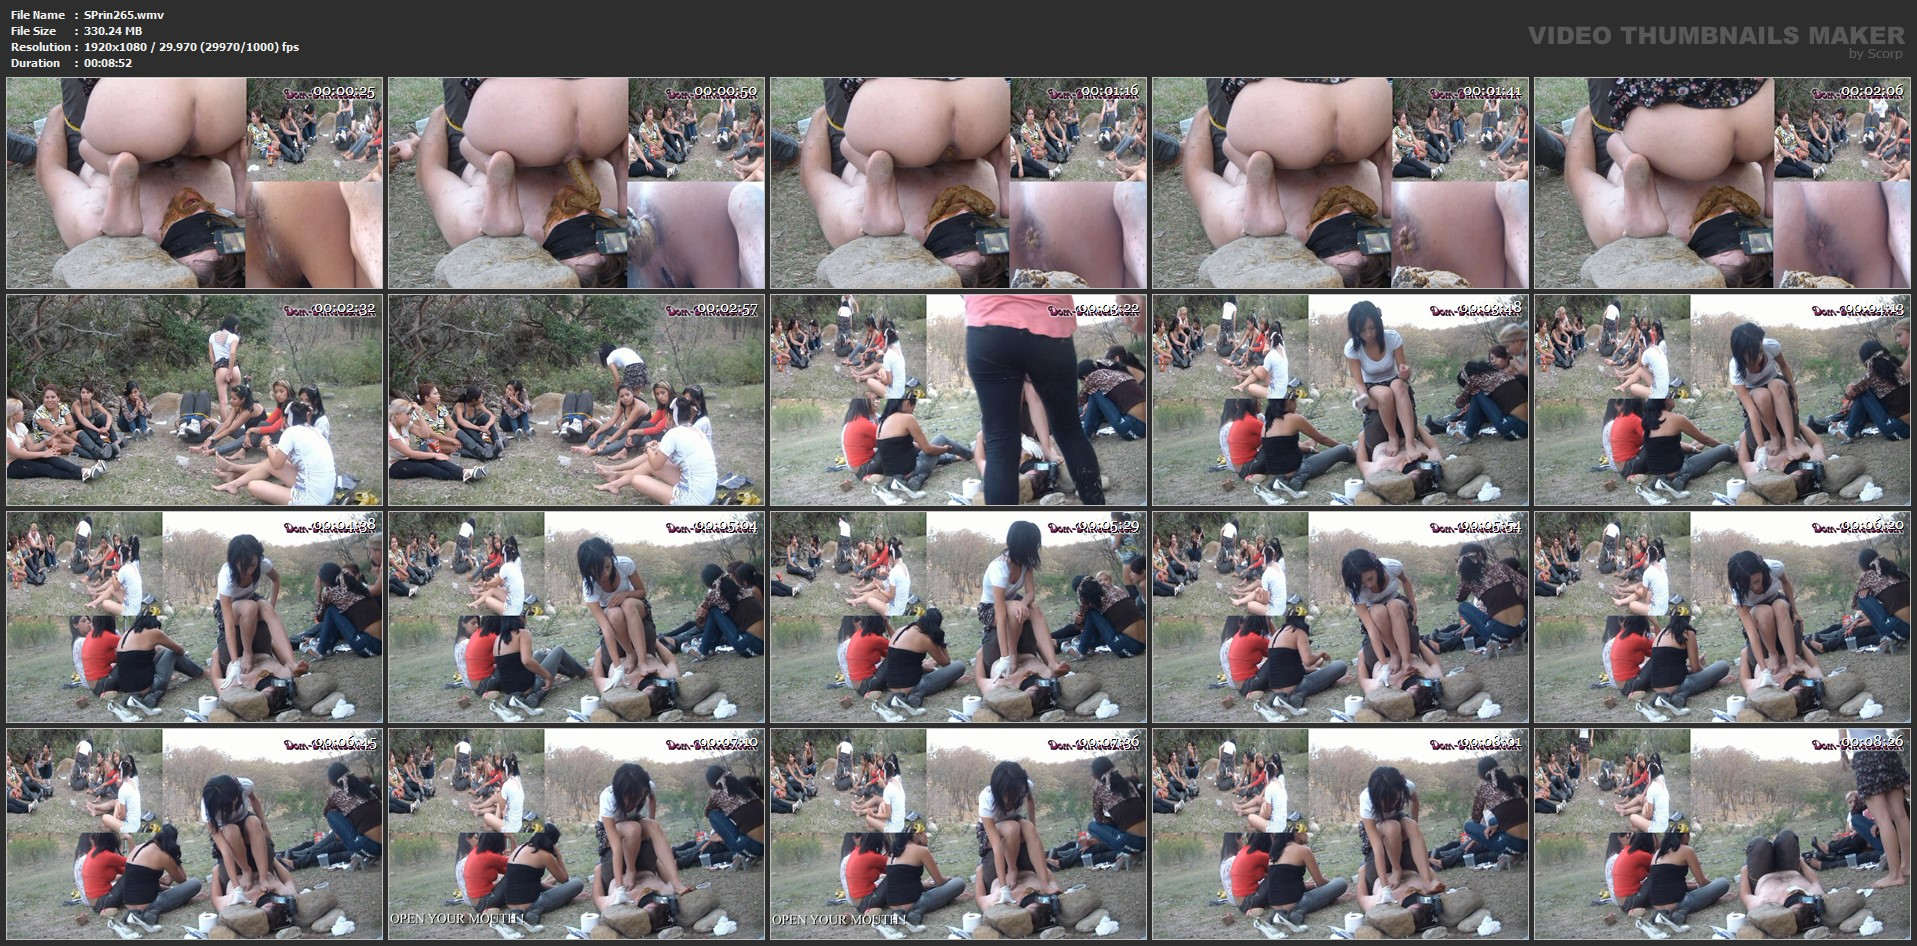 [SCAT-PRINCESS] Functional Toilet in the Woods Part 7 Valery [FULL HD][1080p][WMV]